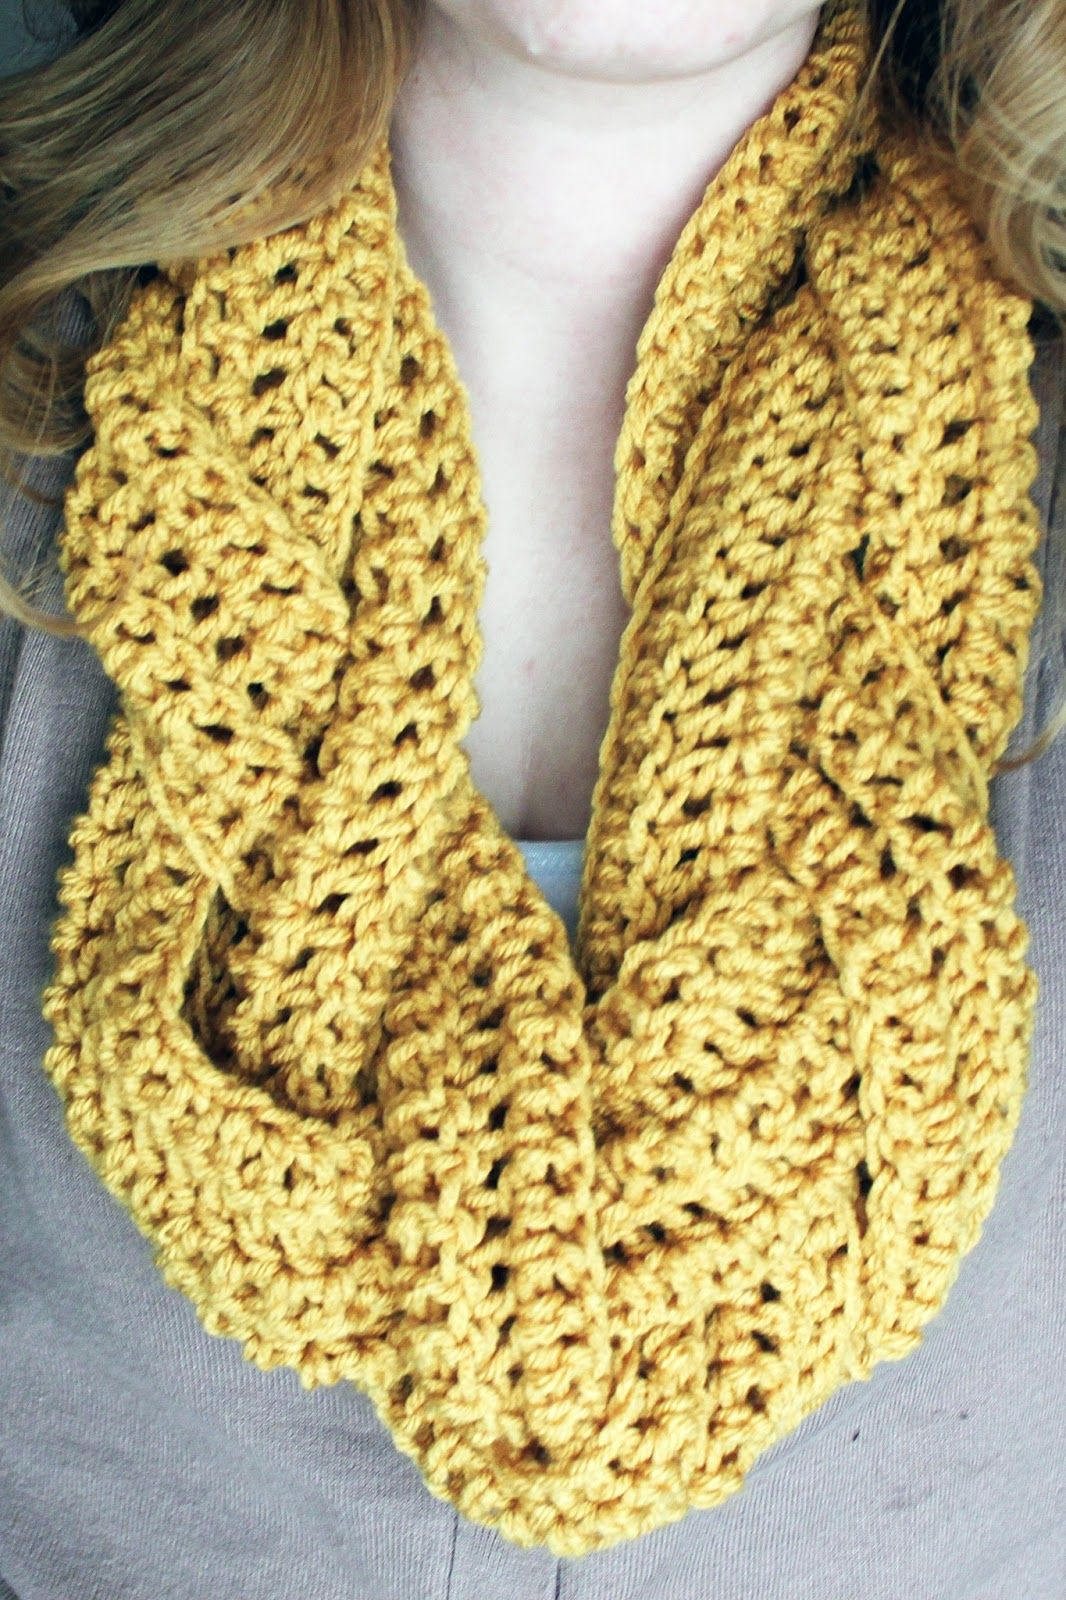 UPDATE: My scarves are now for sale on Etsy! Check out my shop and ...